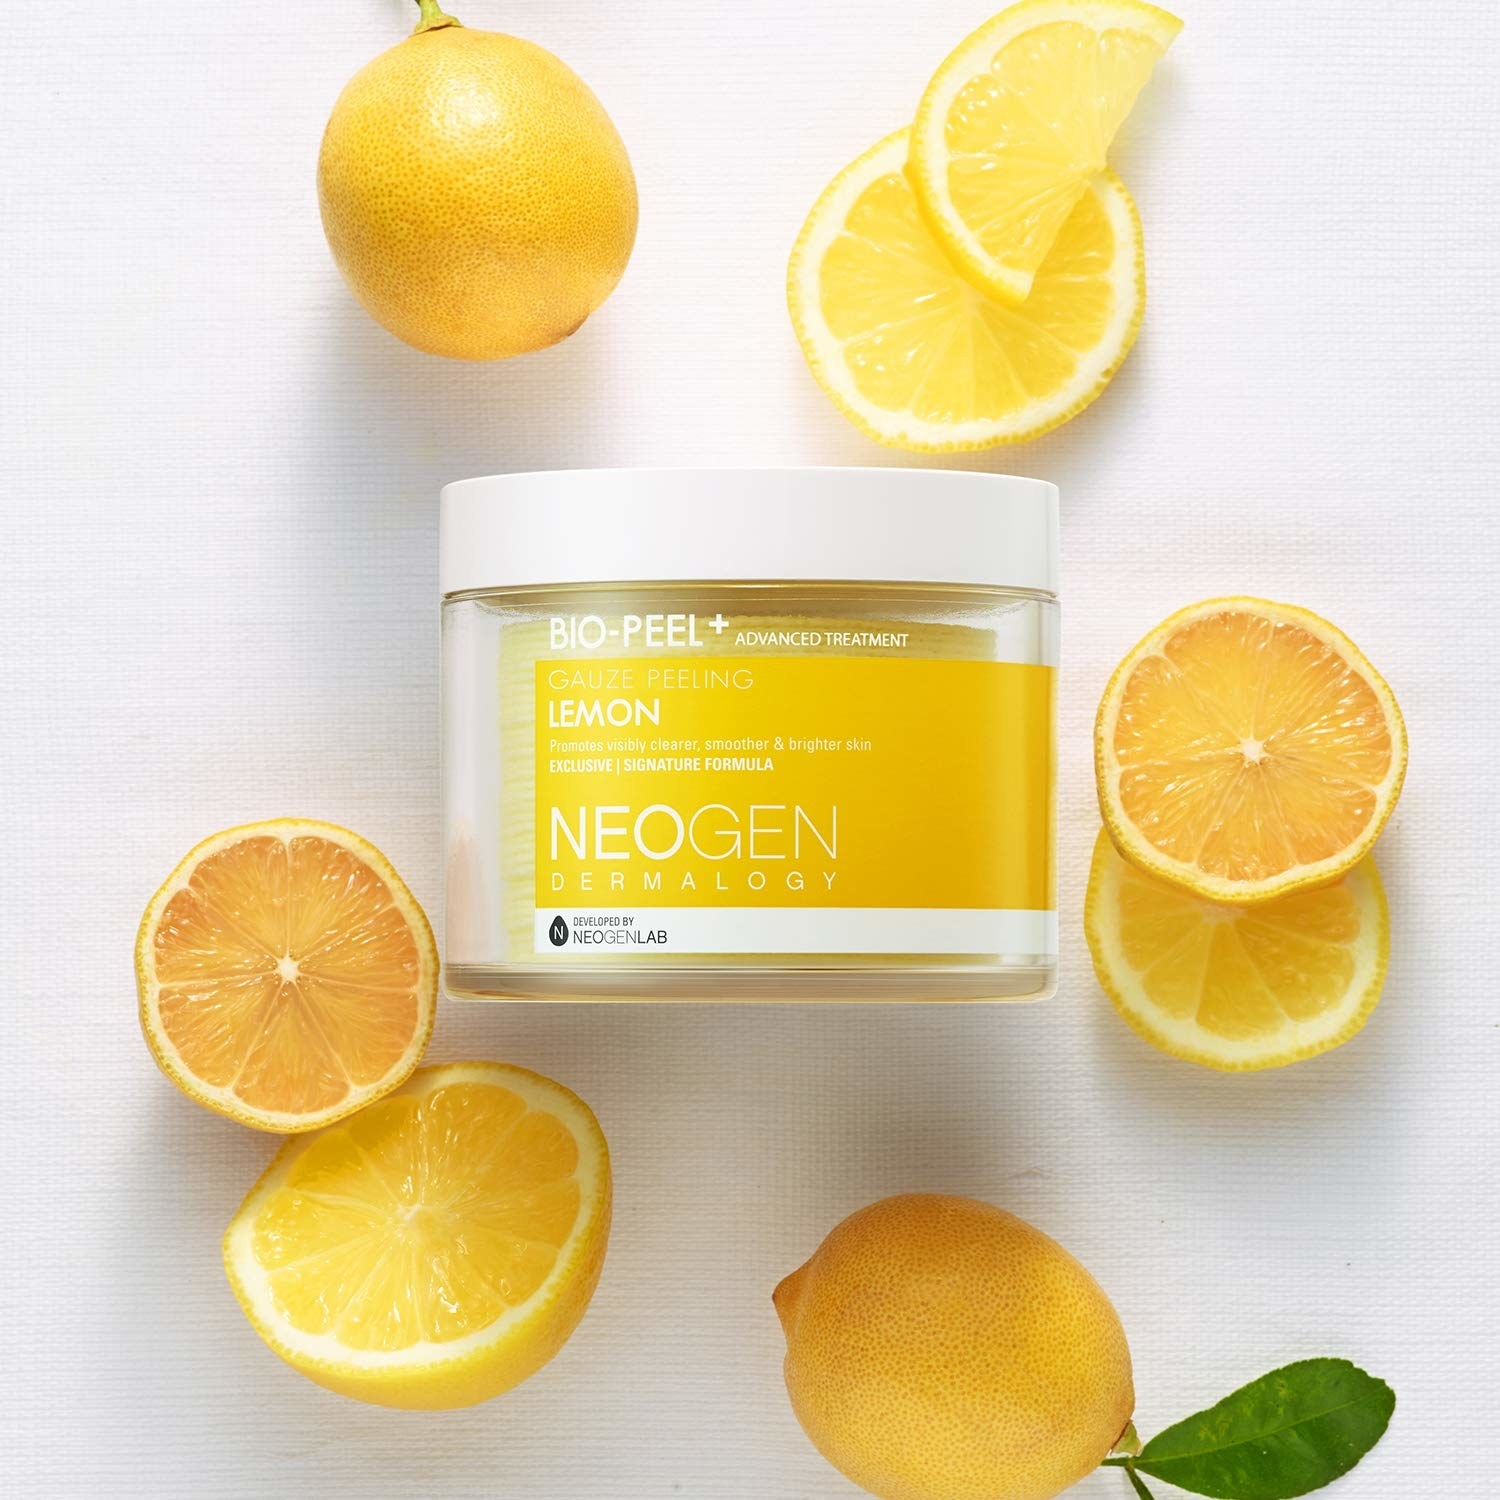 the jar of peeling pads with a twist top and yellow packaging